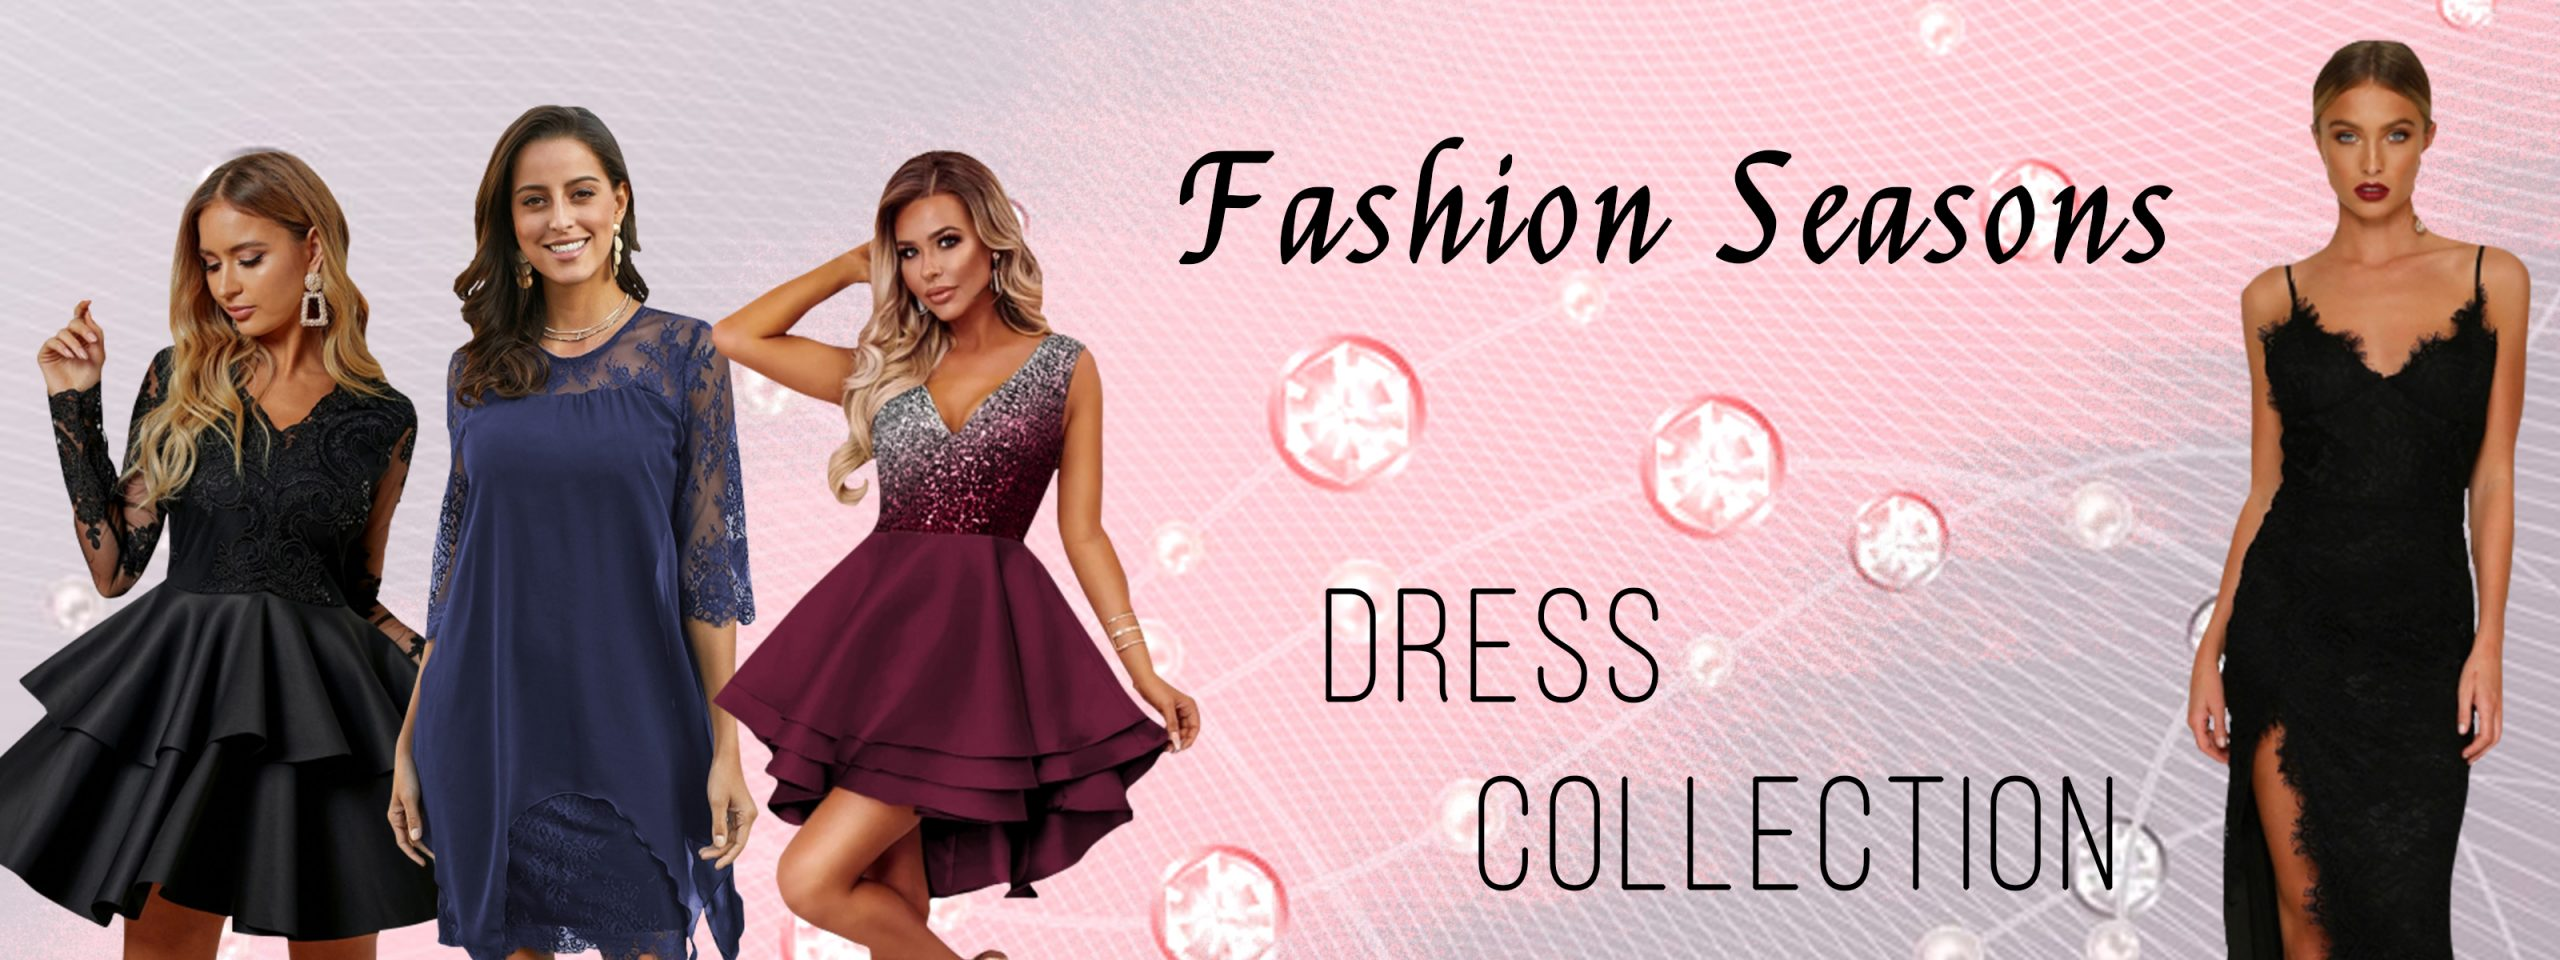 Fashion-Seasons-Dress